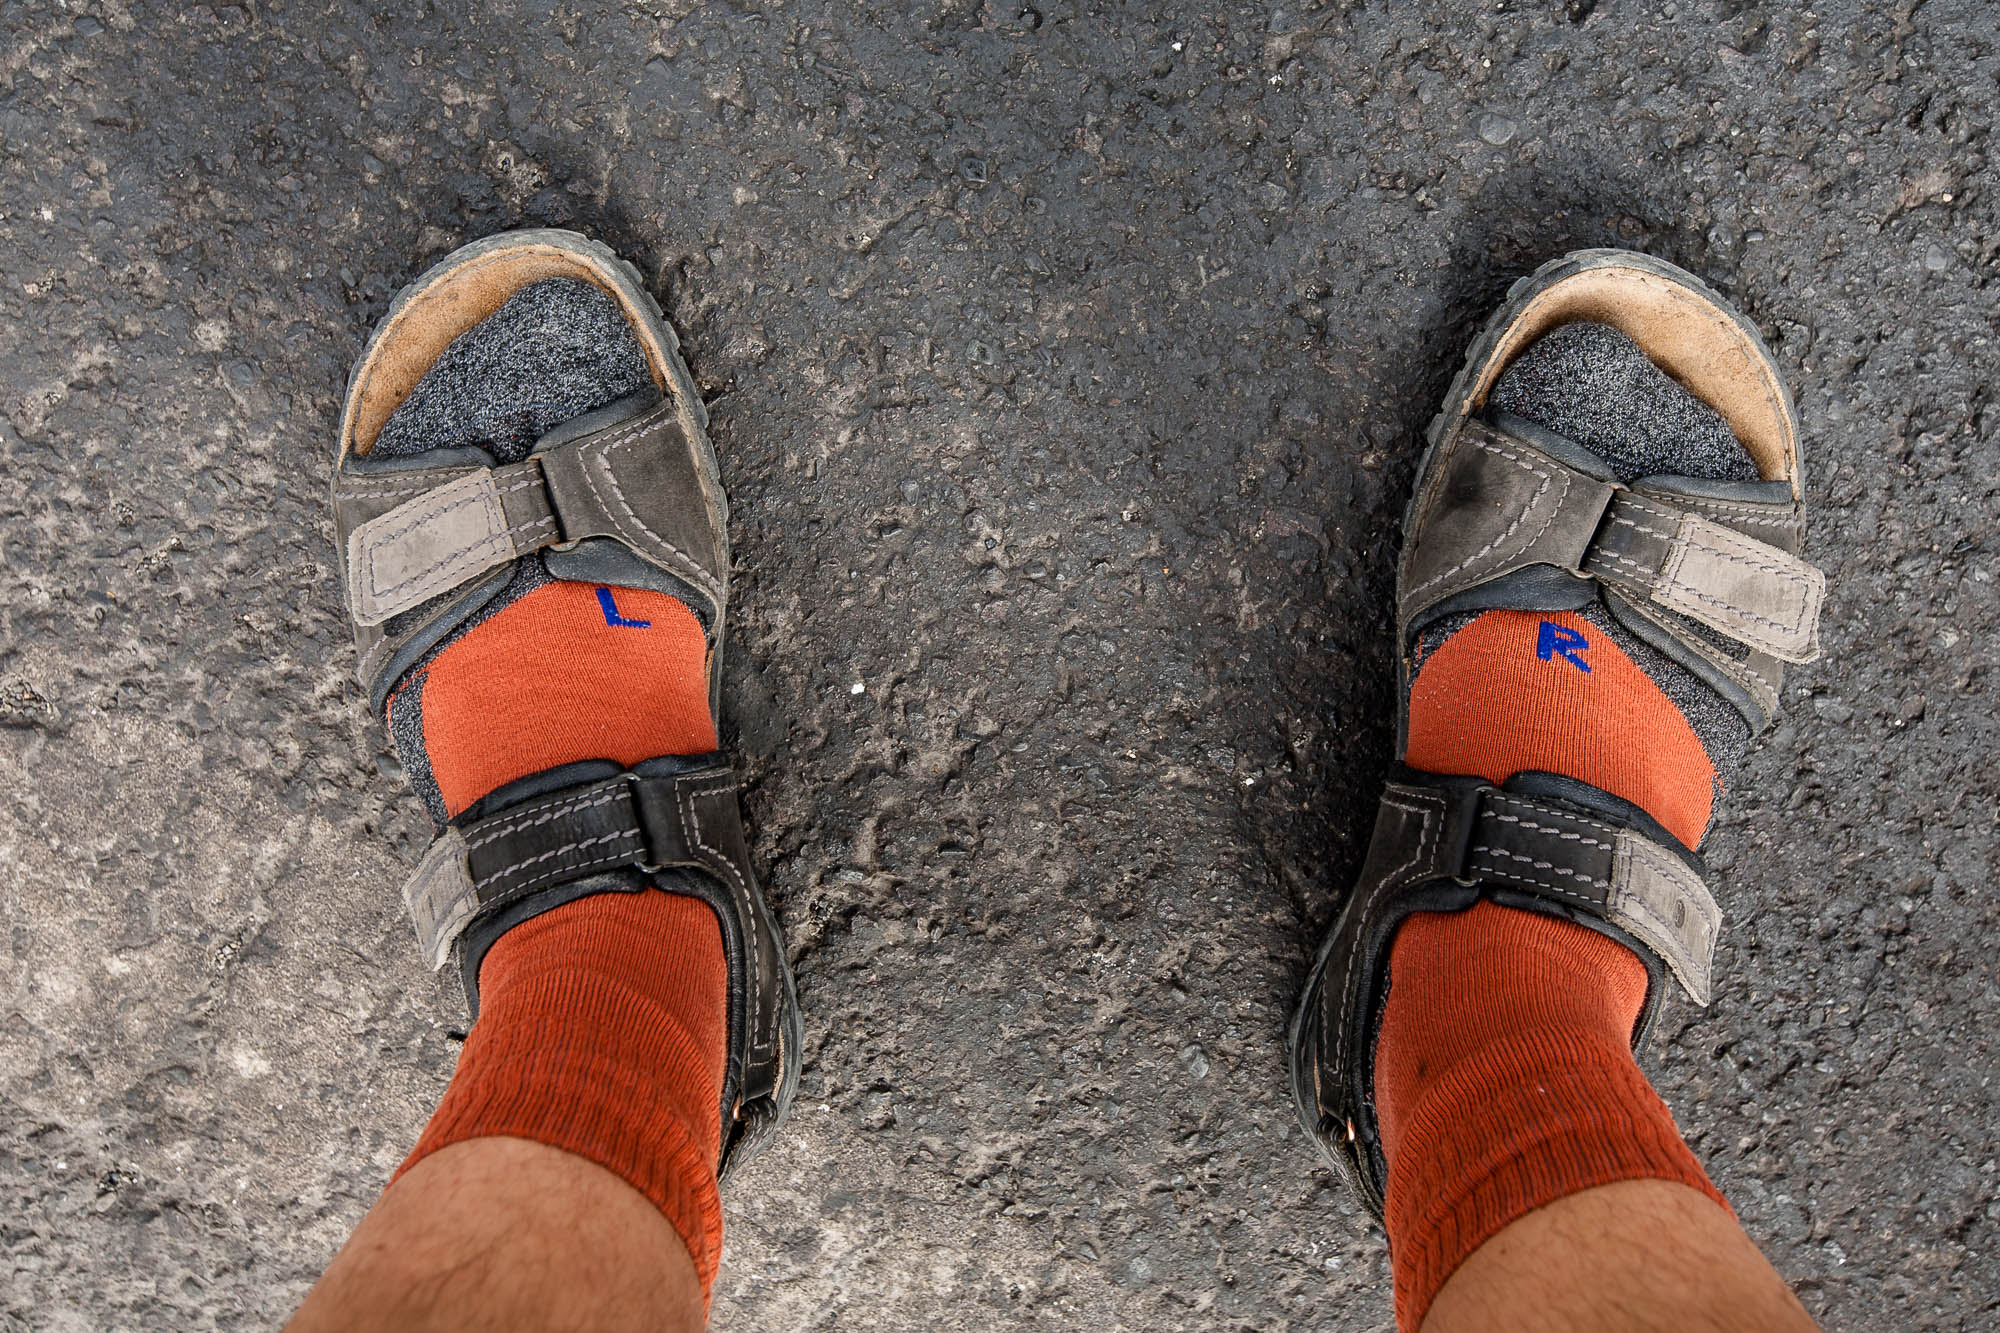 German style sandals with socks